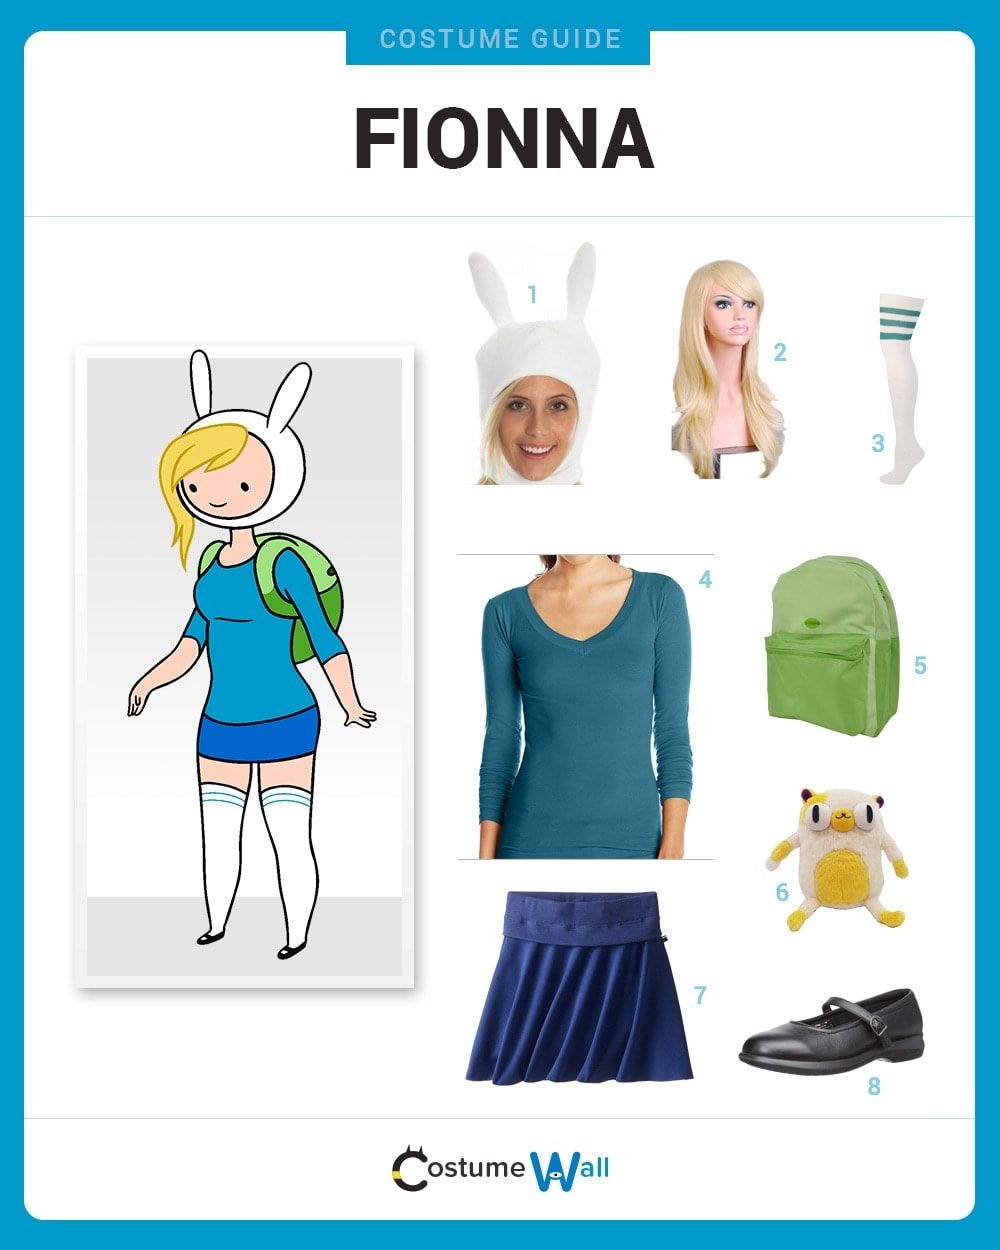 Fionna Costume Guide